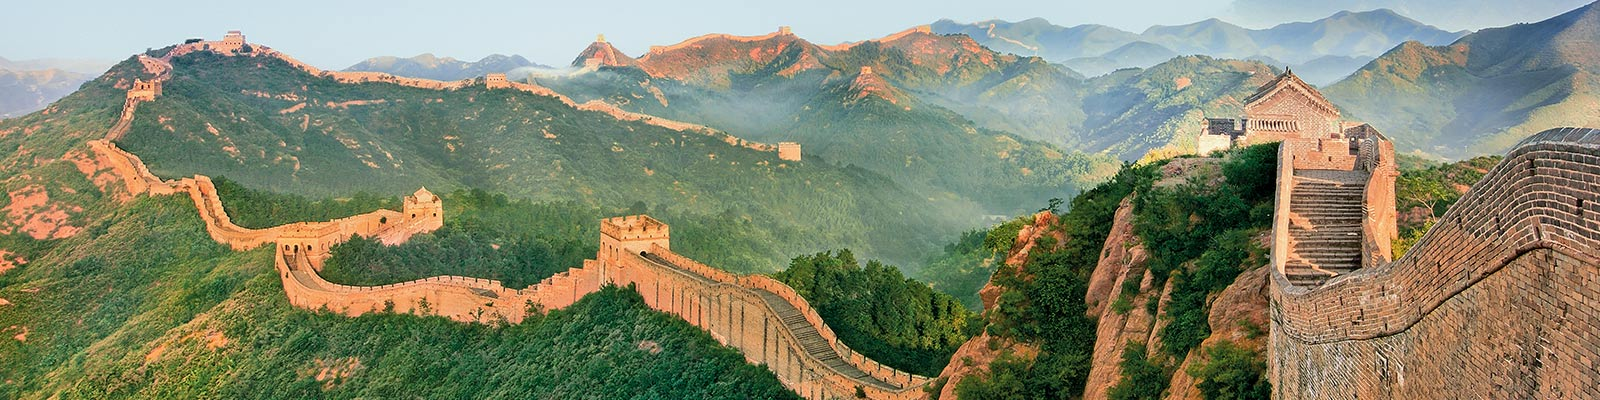 CRUISE_ImperialJewels_HERO_Bejing-GreatWall_1600x400_tcm21-10630